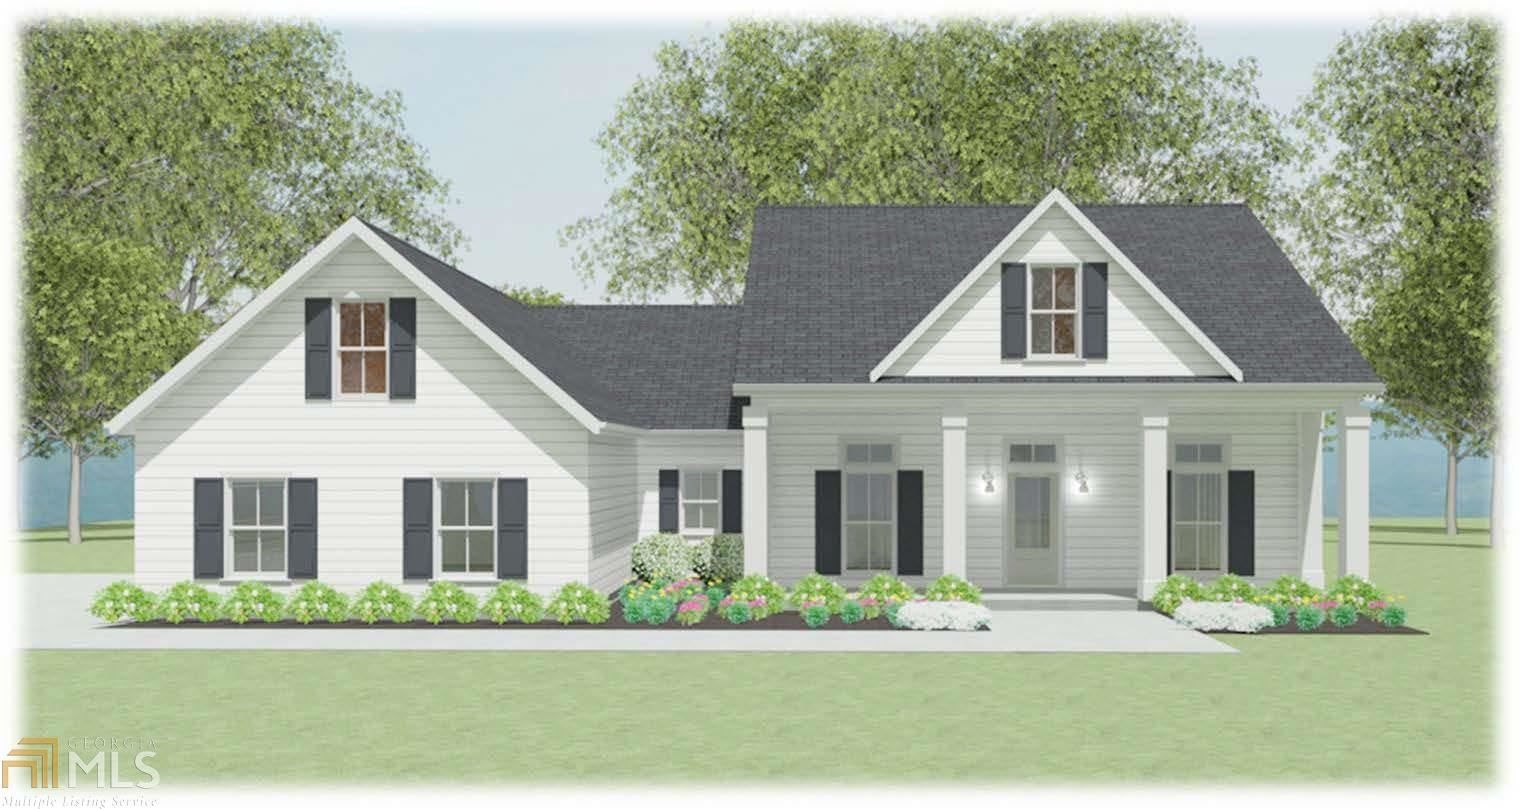 0 Spear Cir, Senoia, GA 30276 - MLS#: 8849095